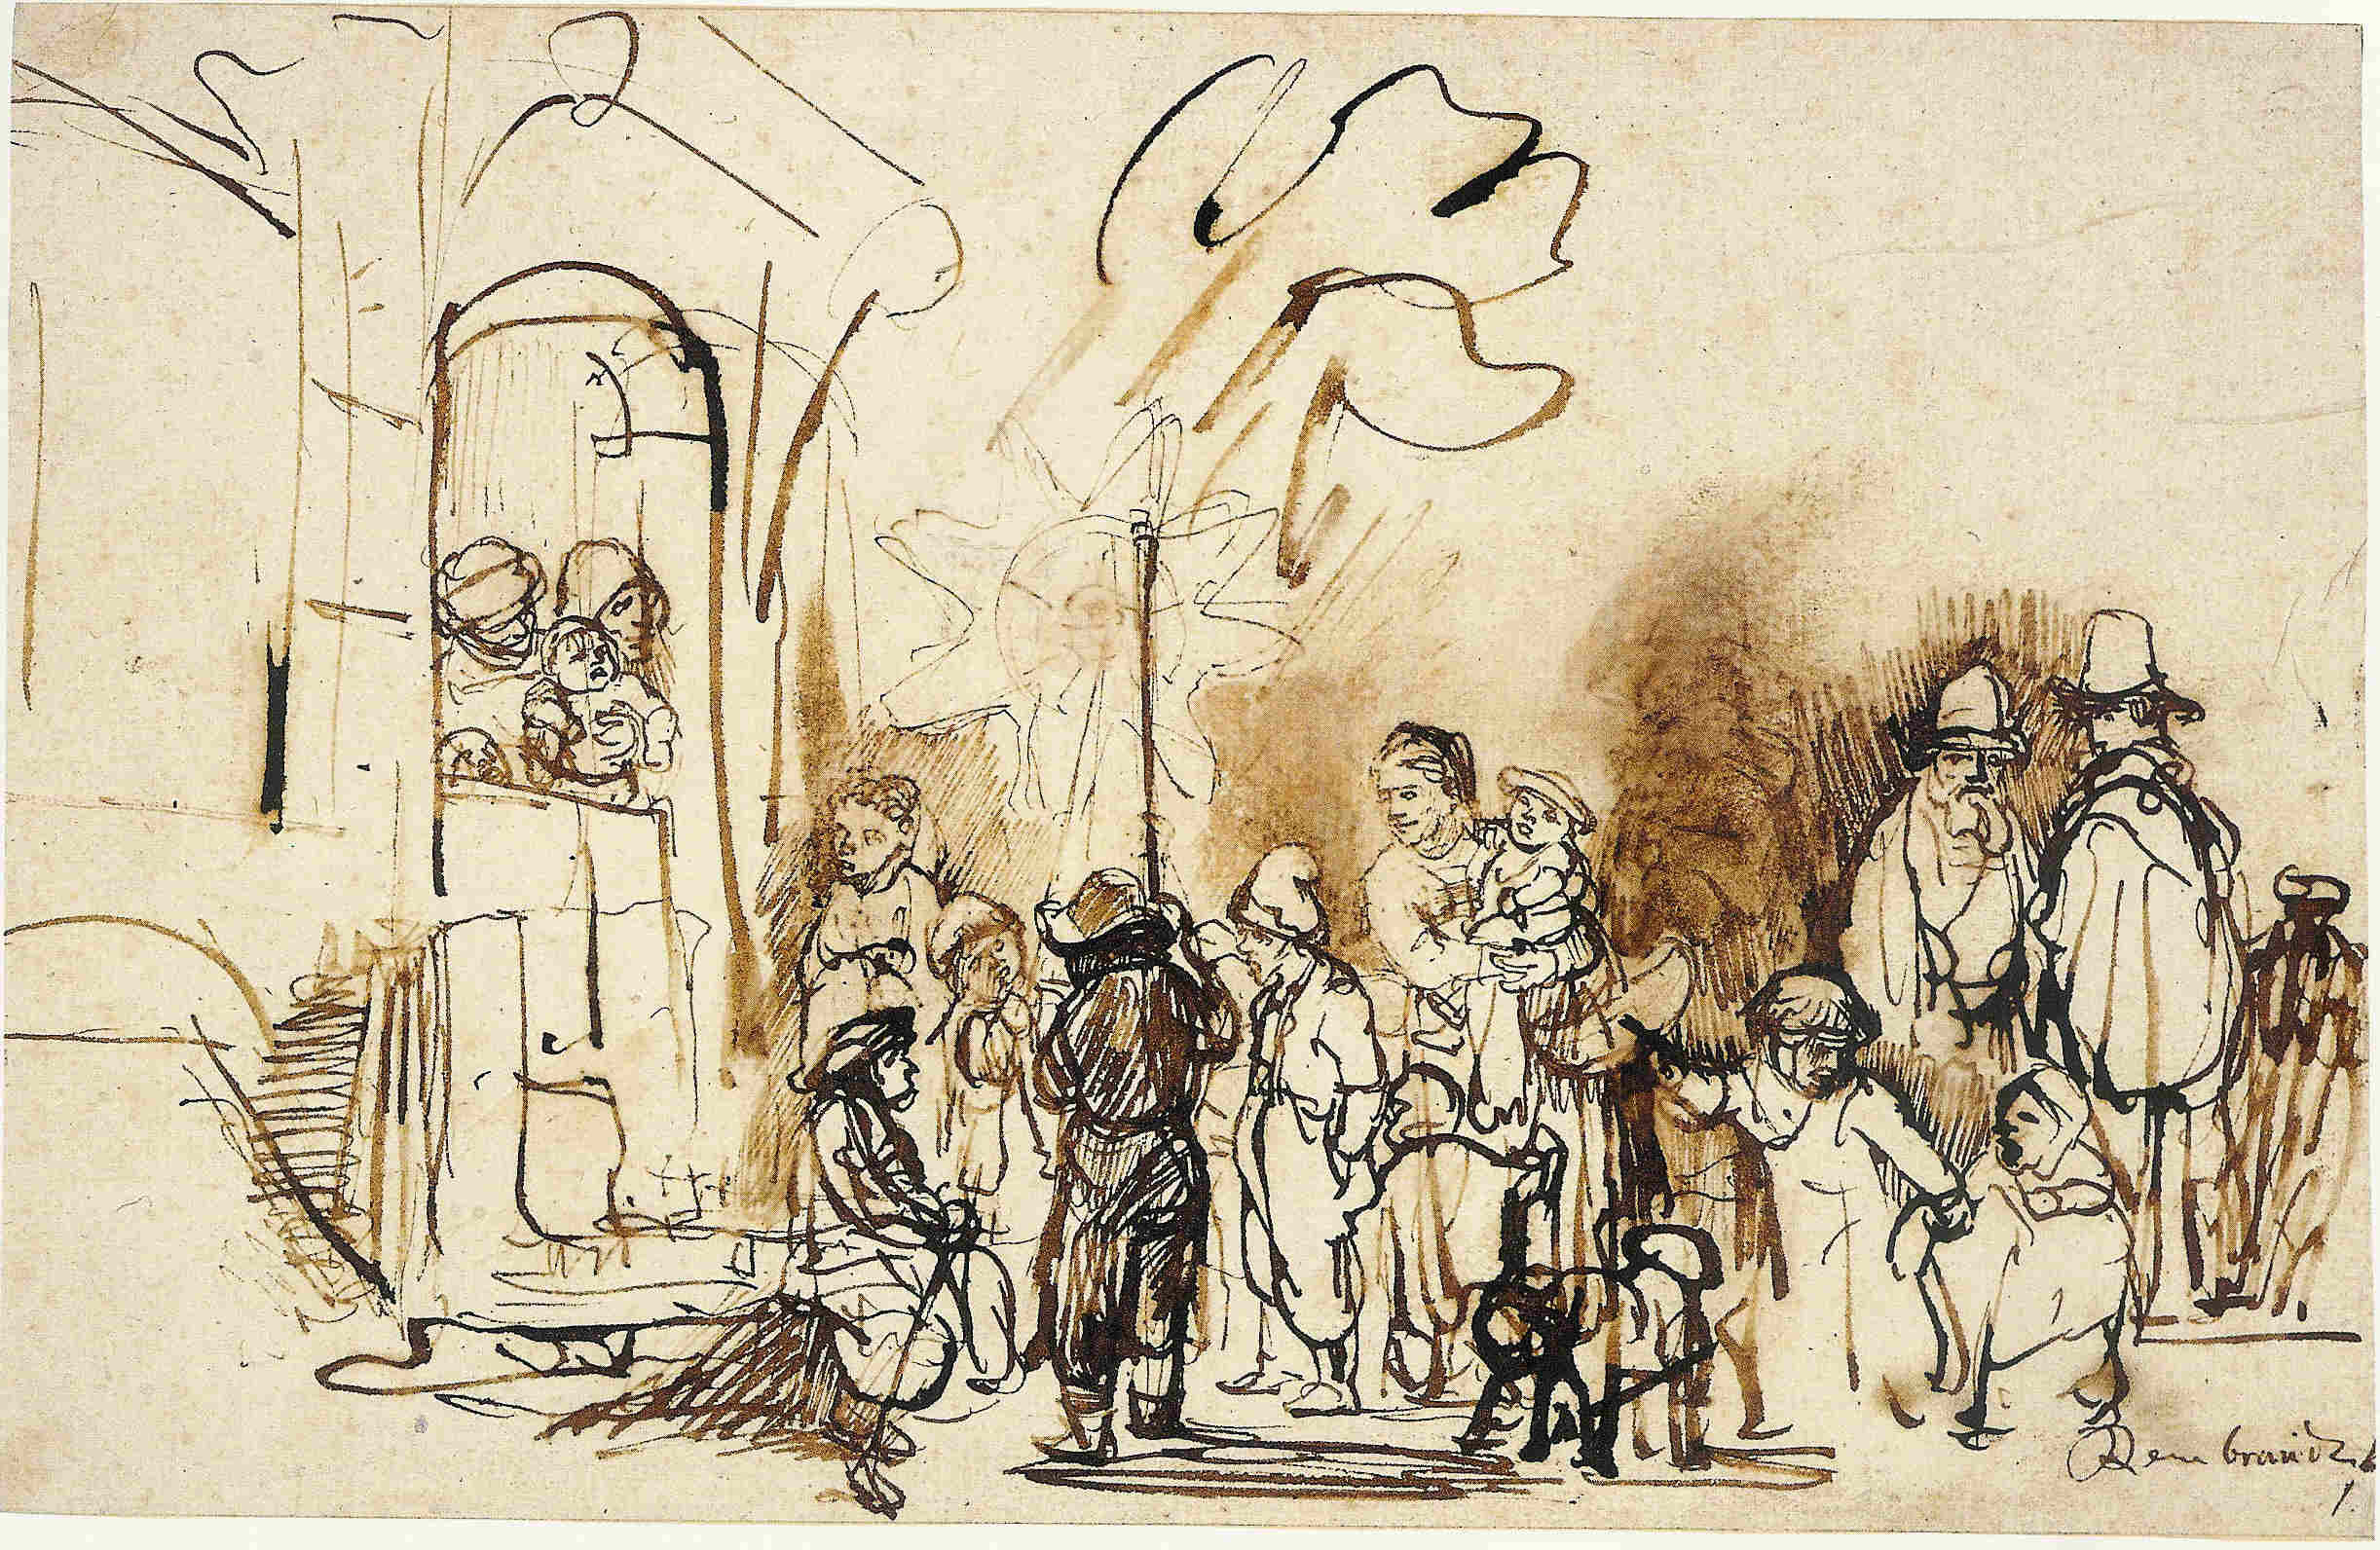 2444x1592 Brush Drawings Rembrandt, Drawings And Vans